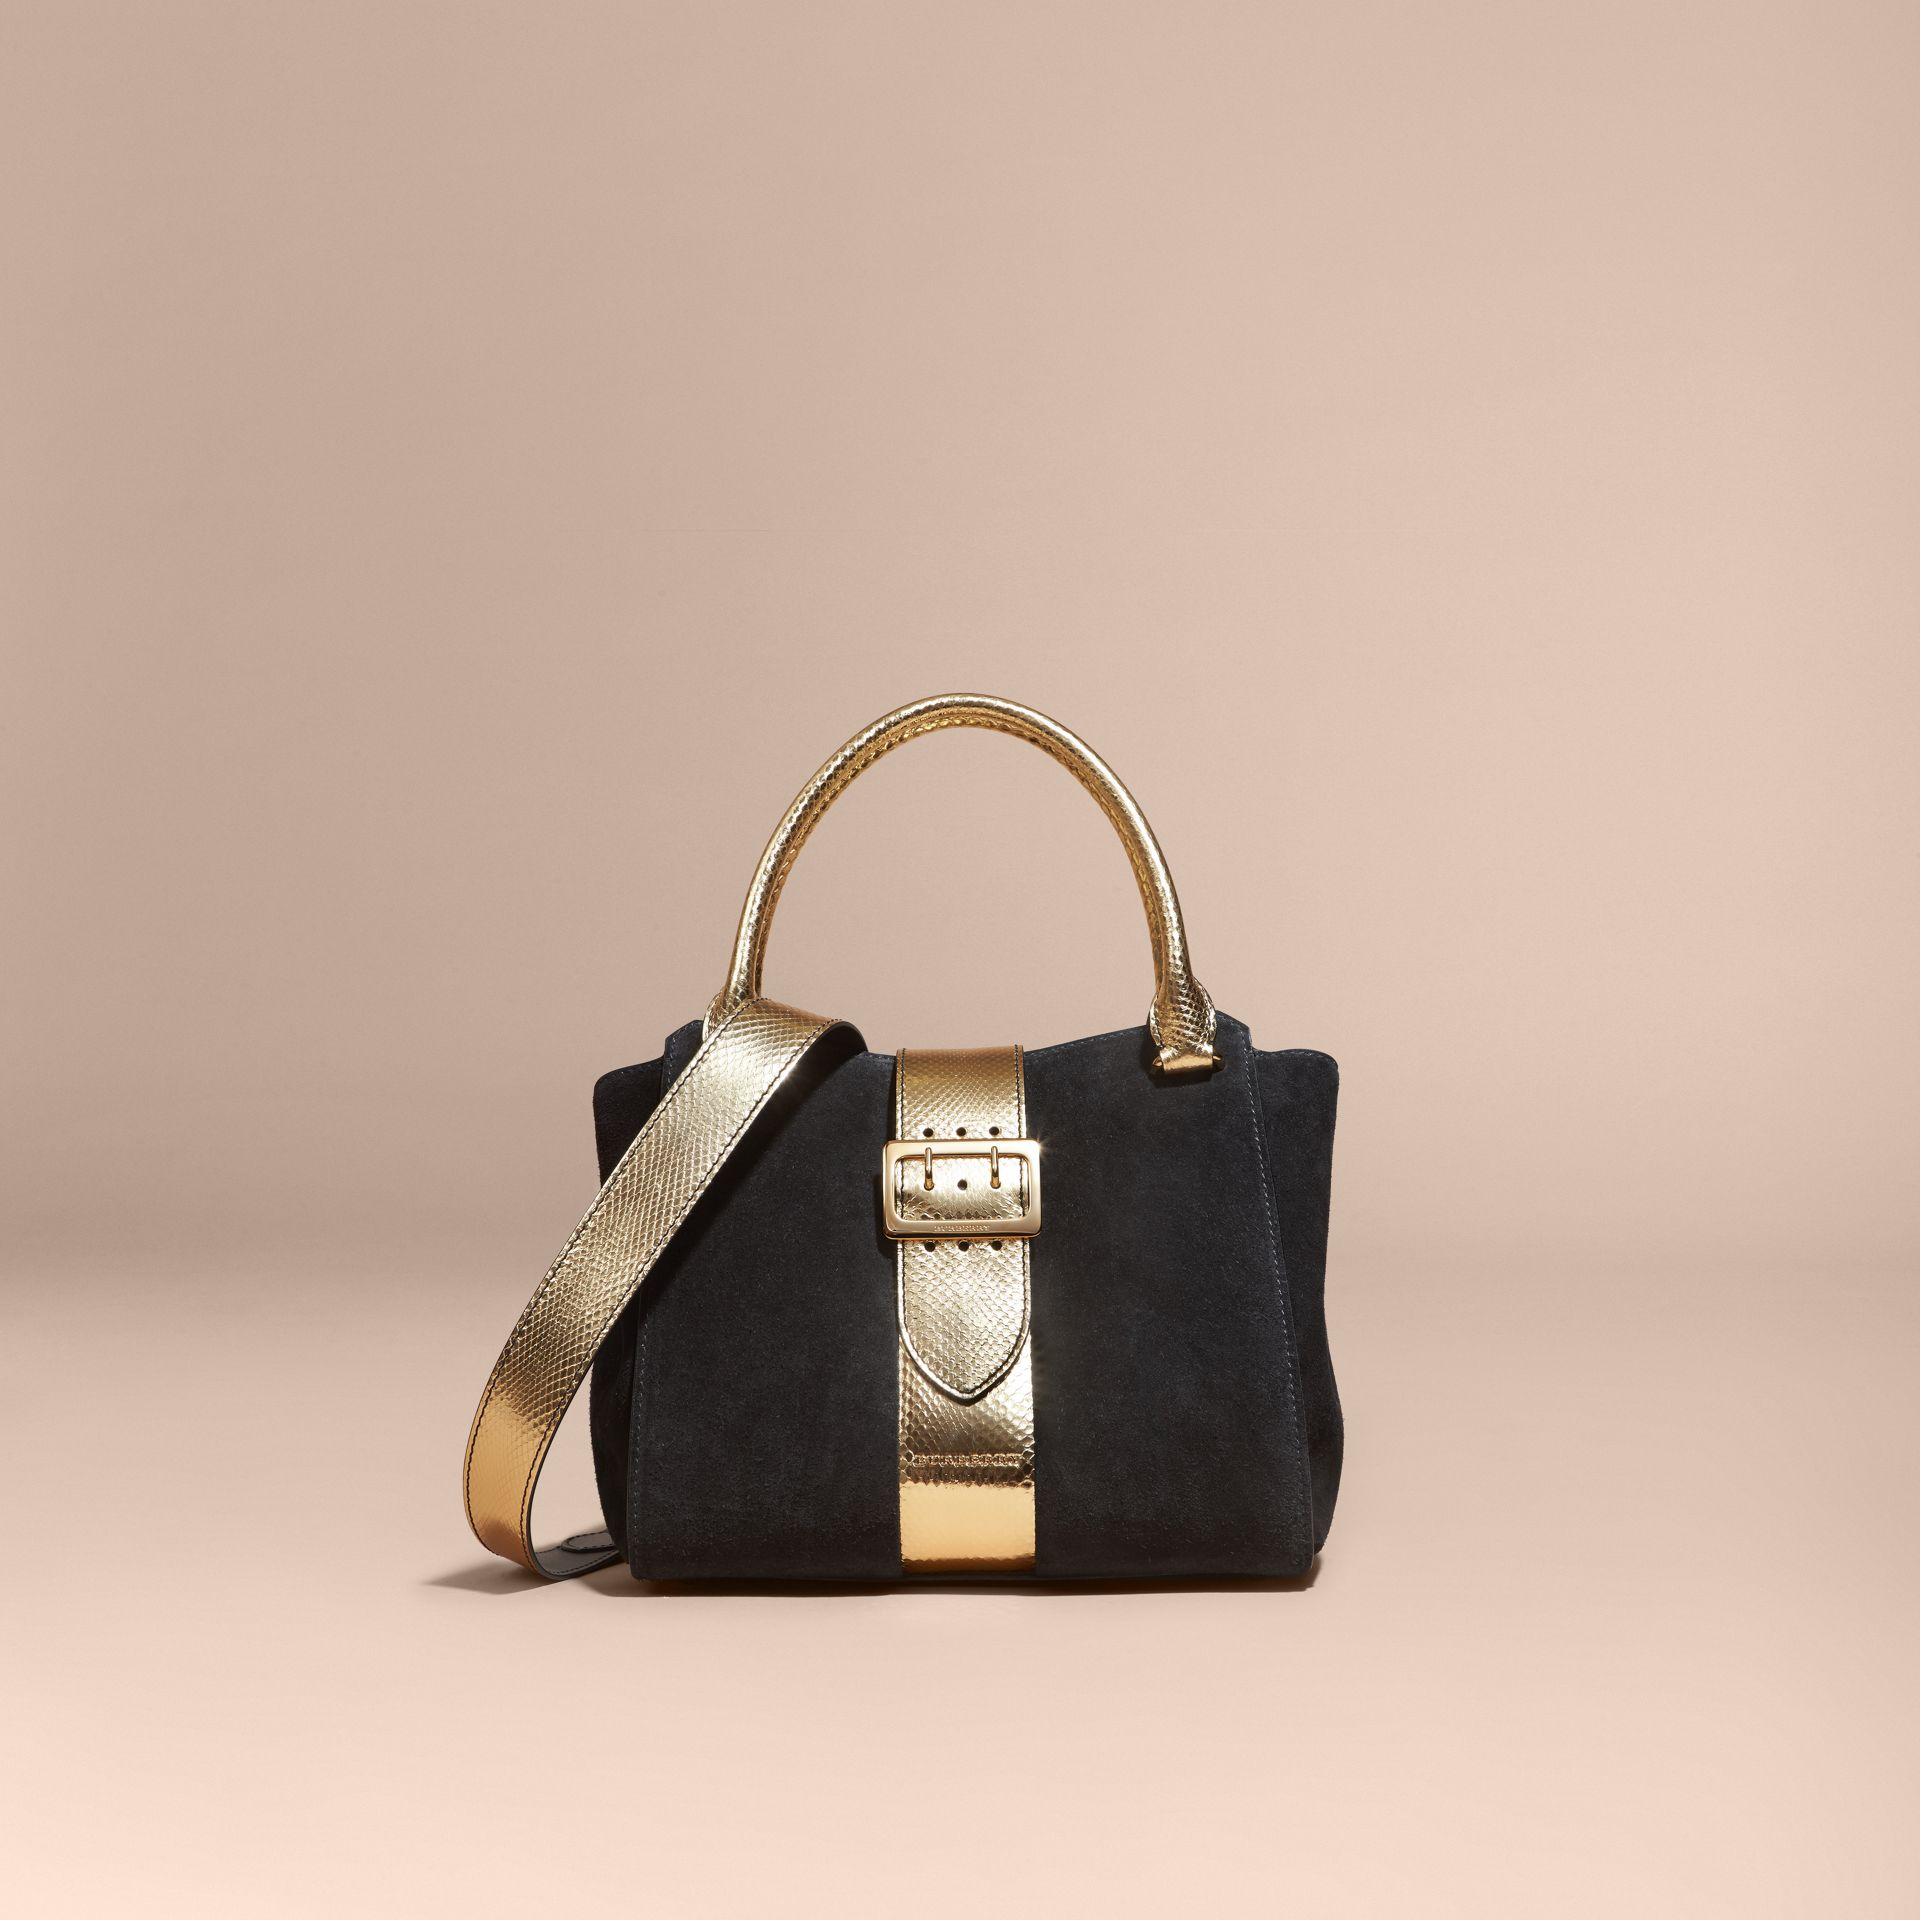 Sac tote The Buckle moyen en cuir velours et peau de serpent (Noir/or) - Femme | Burberry - photo de la galerie 8